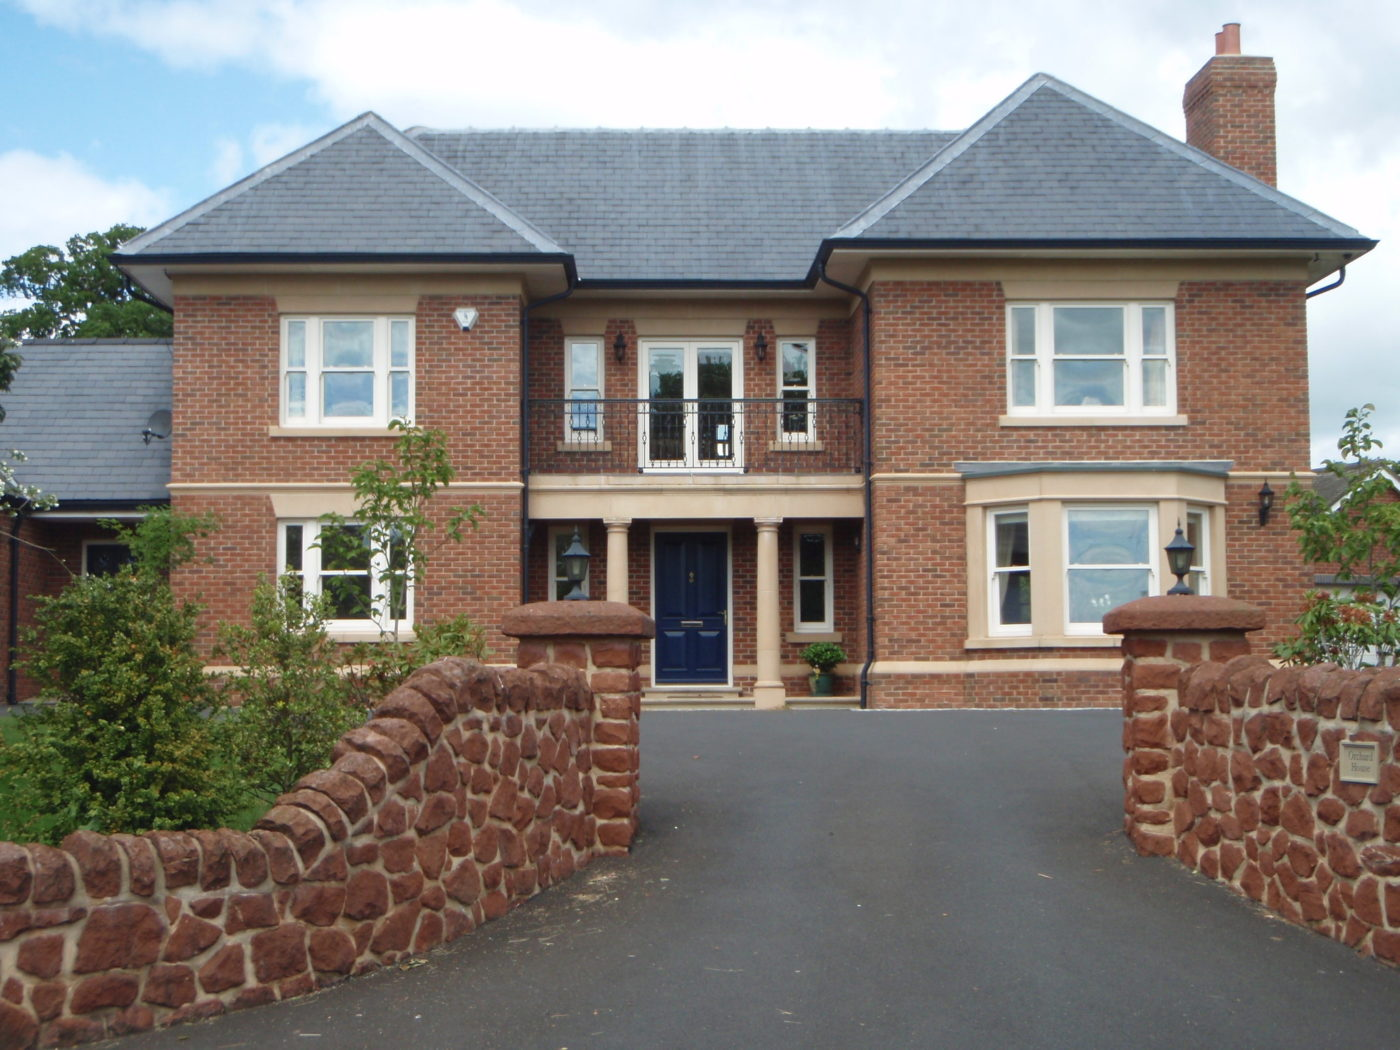 NEW BUILD NEW BUILD Orchard Hse 2008 00000